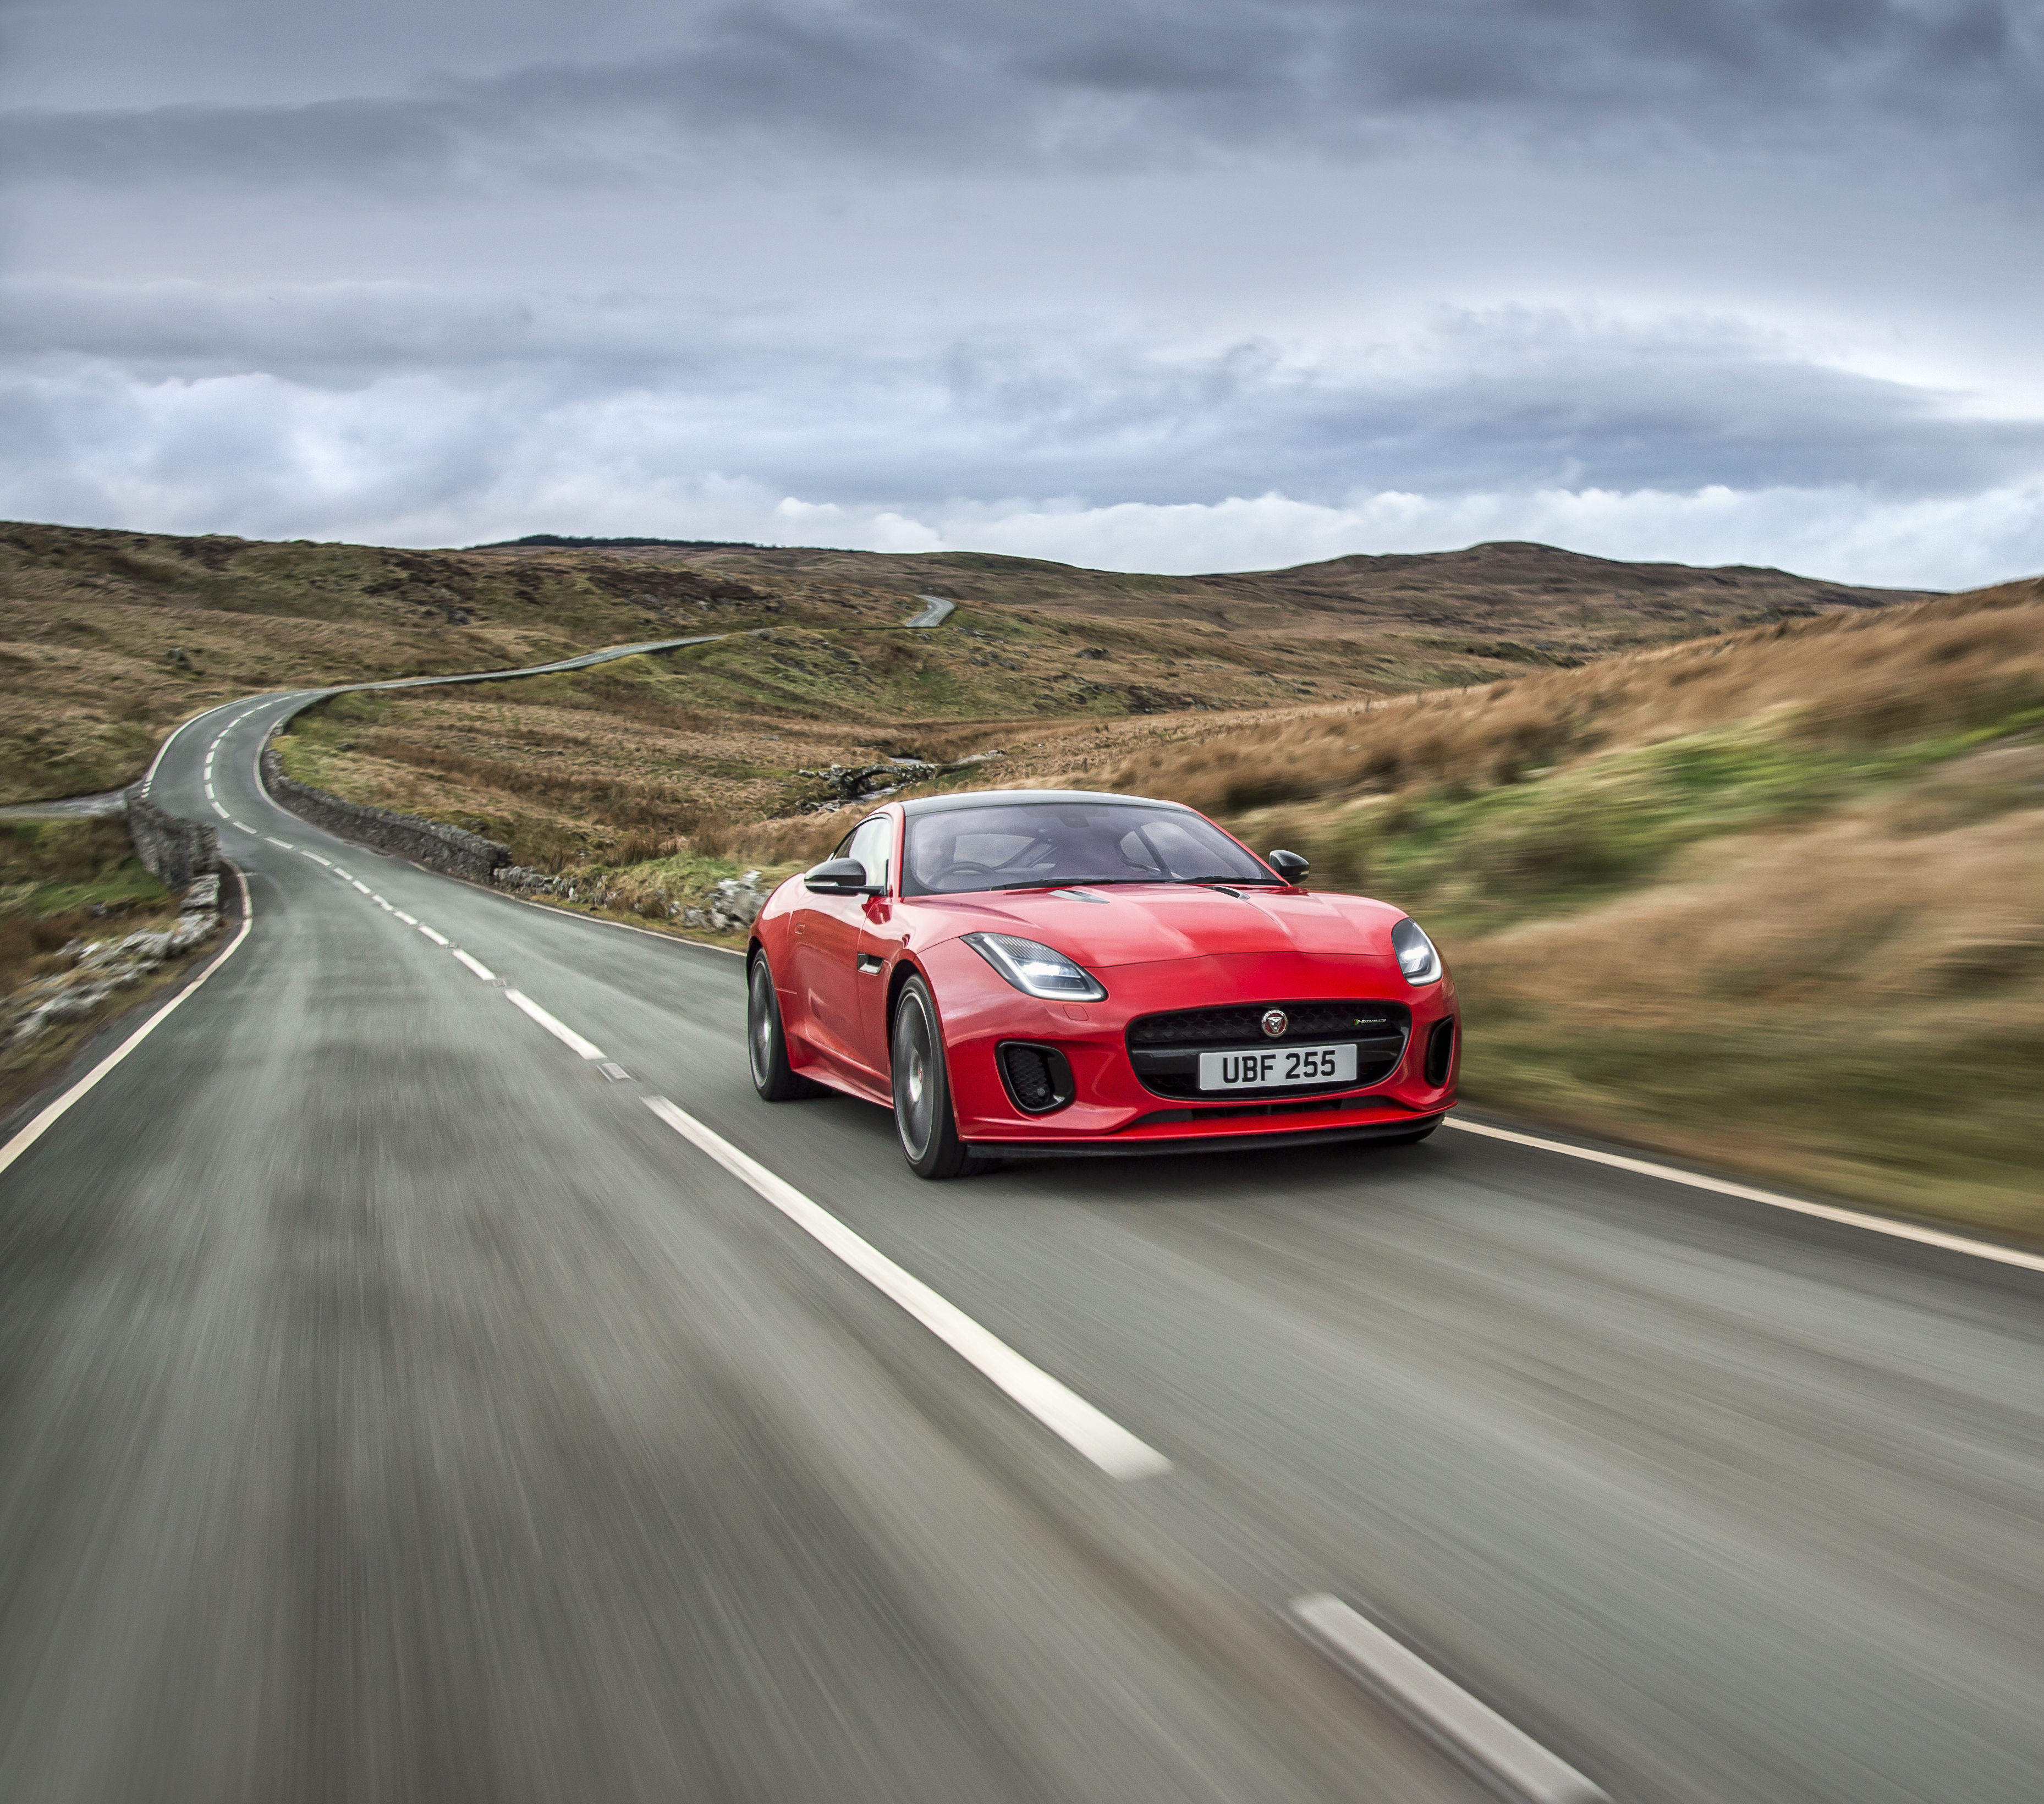 Jaguar four-cylinder F-Type press shot coupe sports car supercar